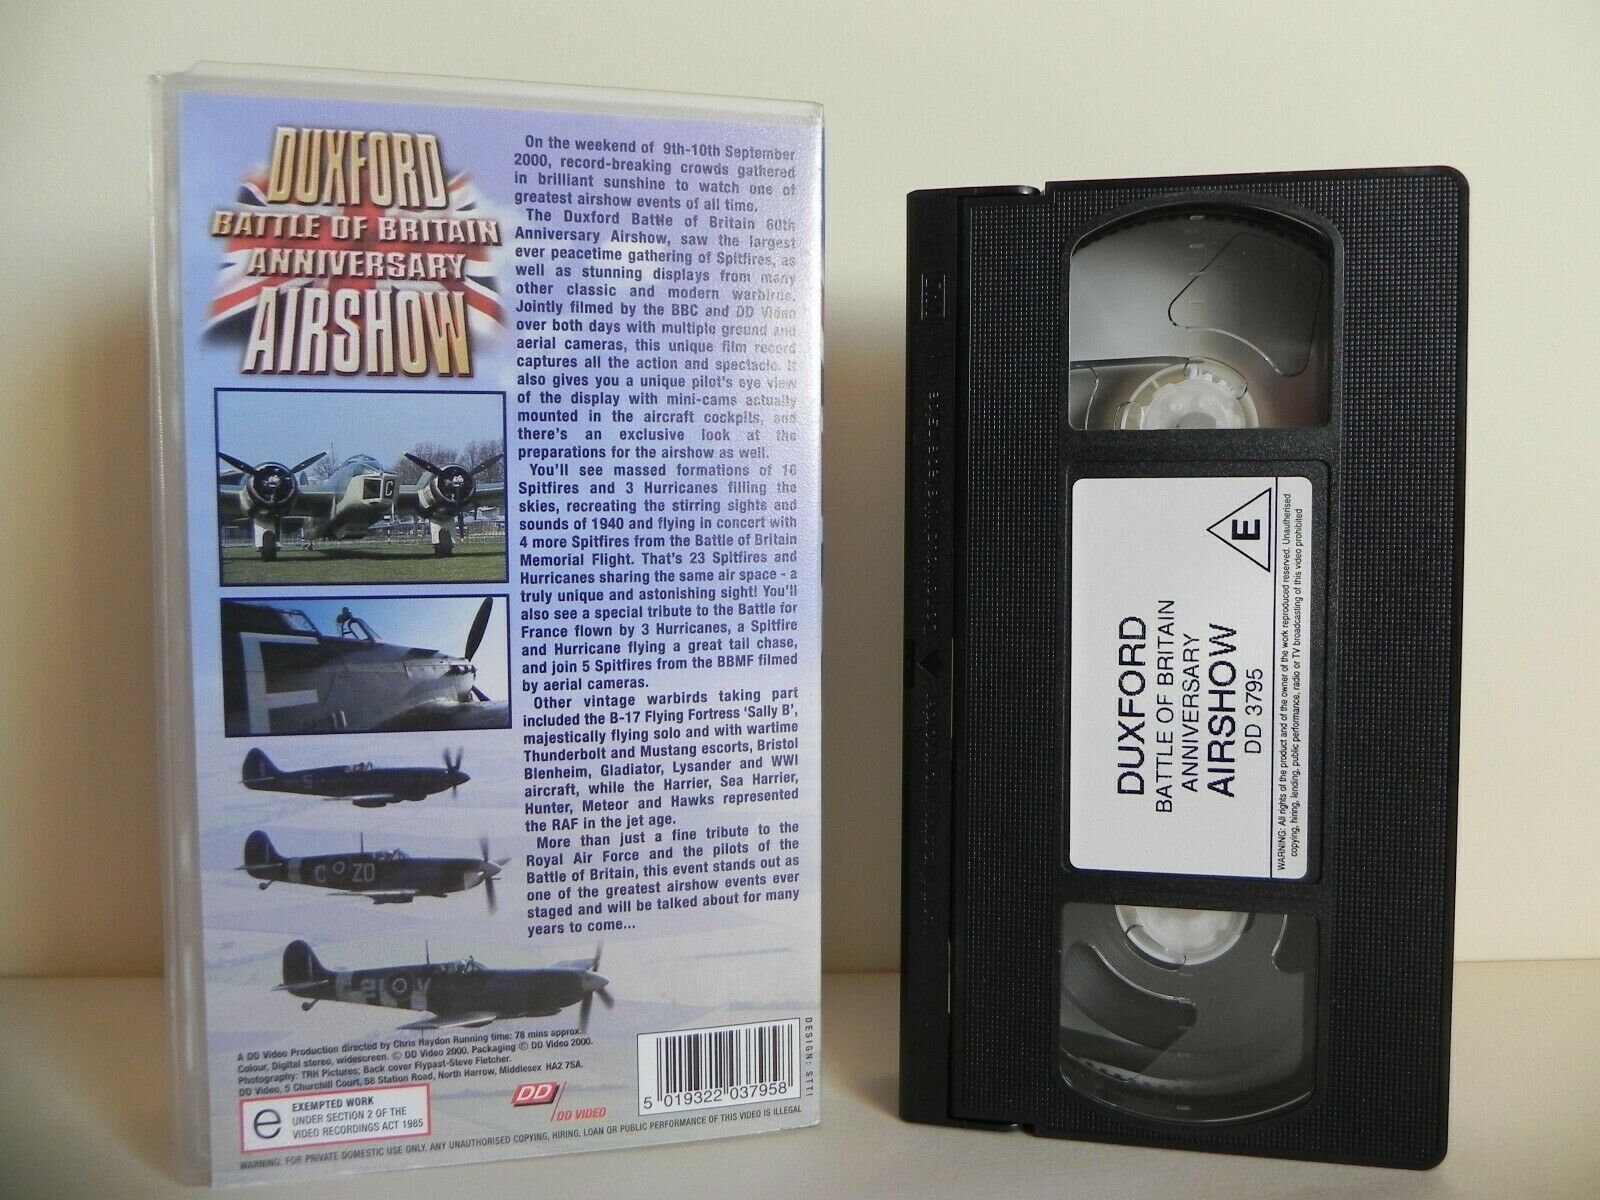 Duxford: Battle Of Britain Anniversary - Airshow - Largest Spitfires - Pal VHS